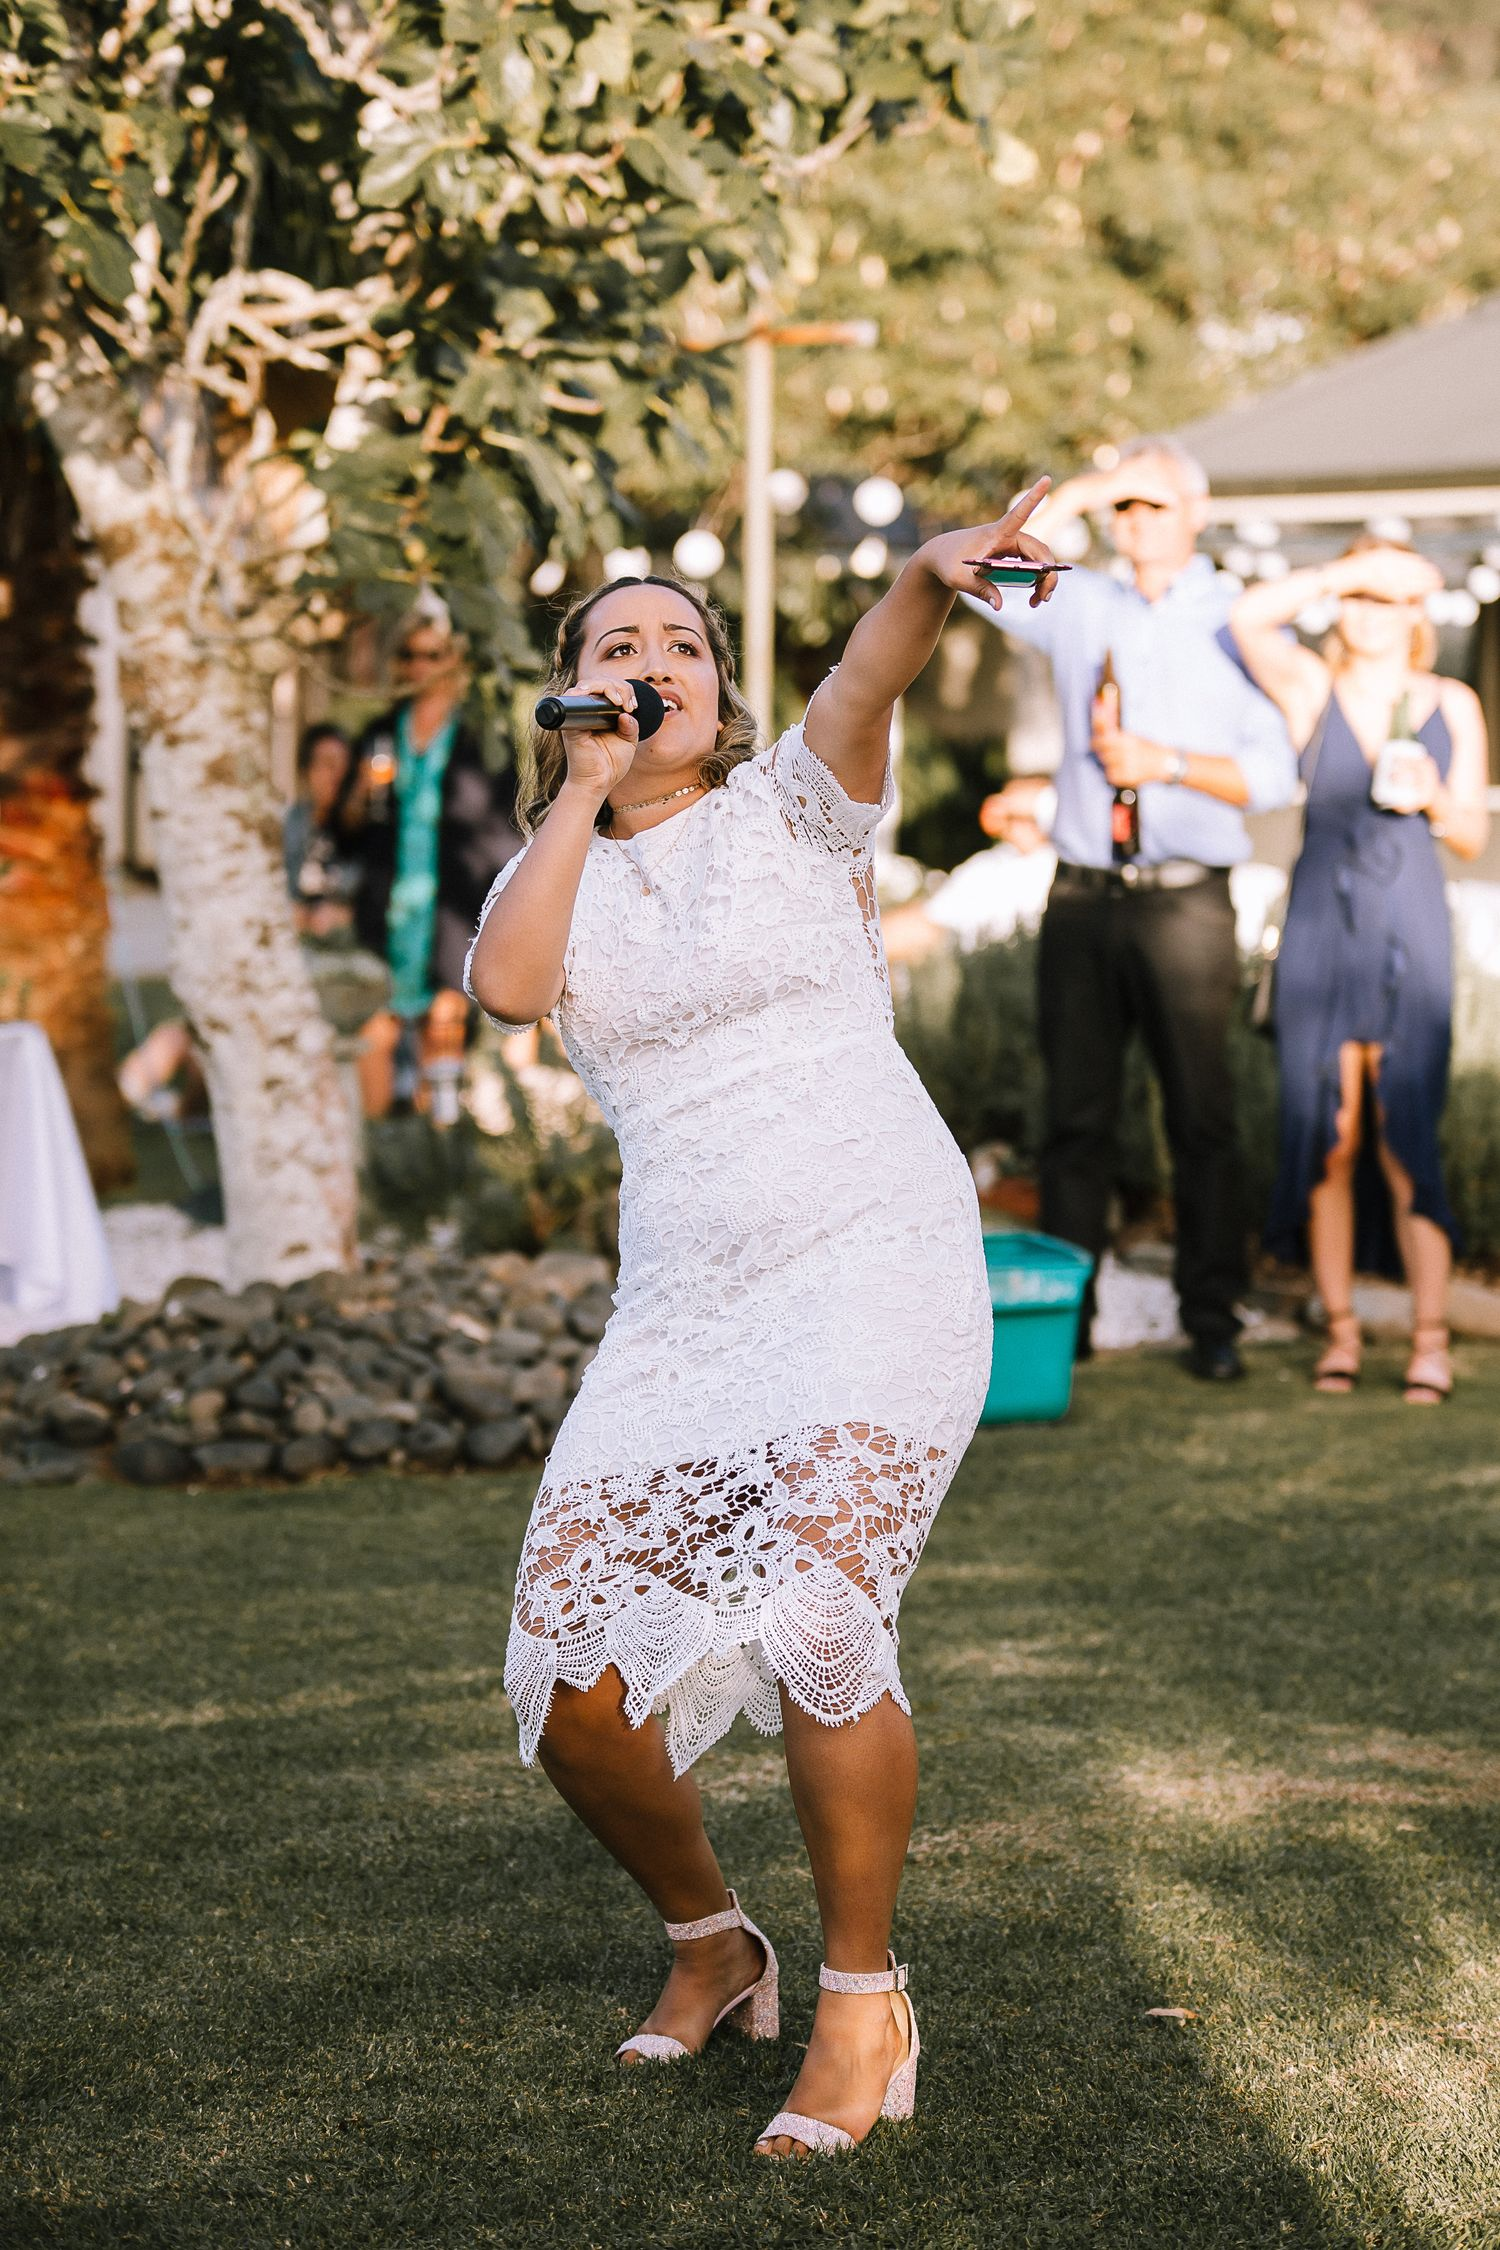 Bridesmaid singing at wedding in Coromandel